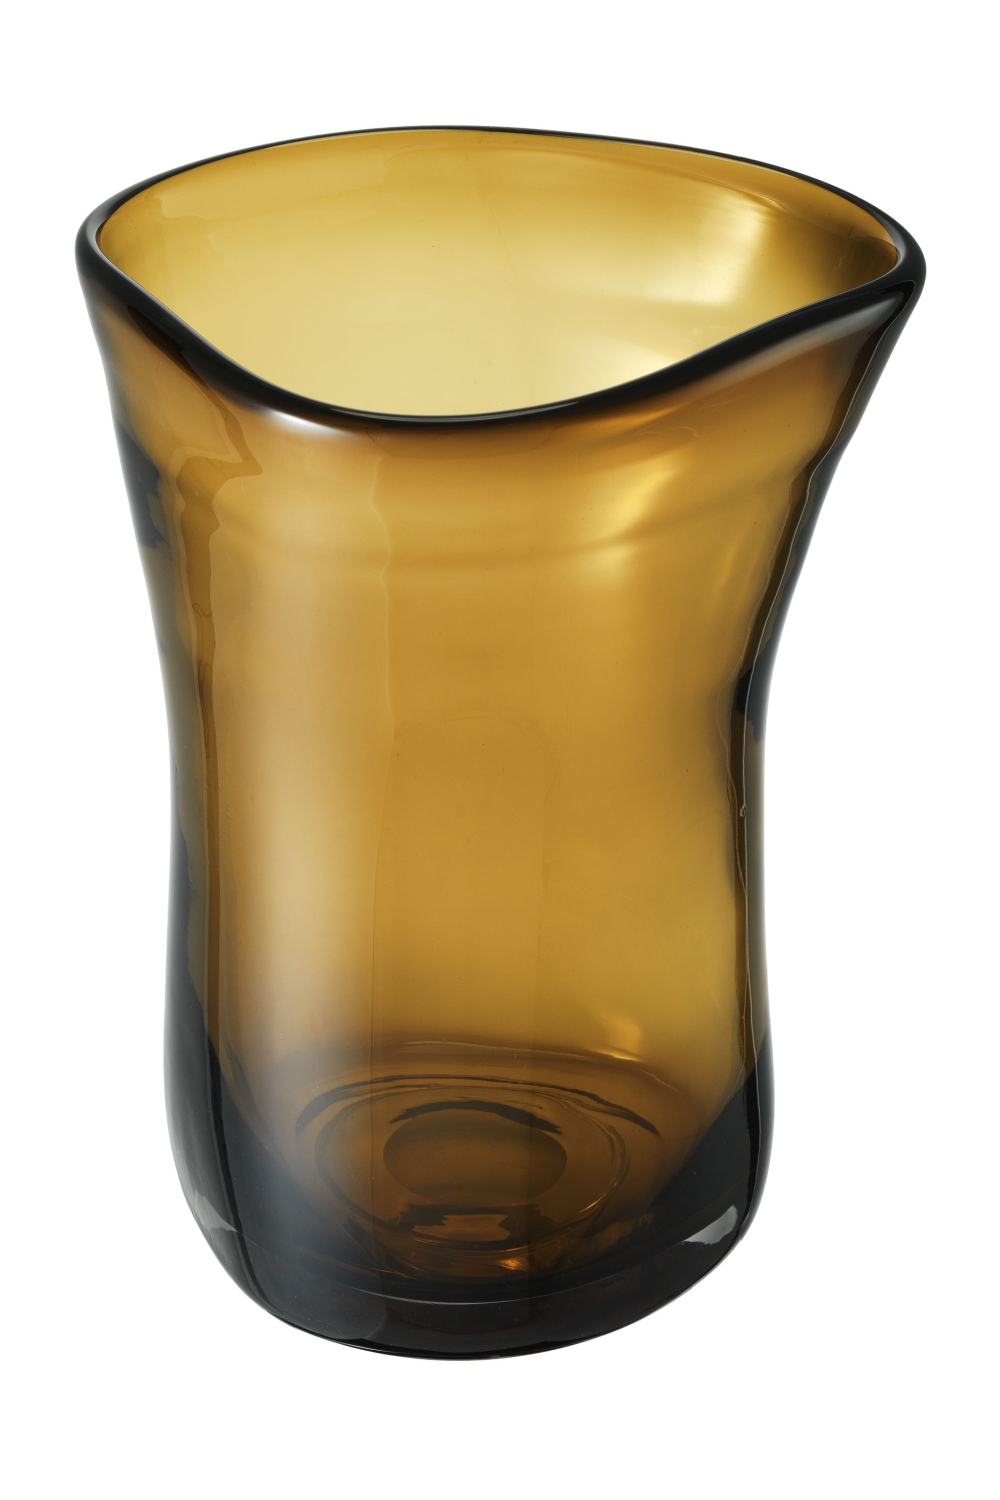 Hand Blown Glass Vase | Eichholtz Corum L | #1 Eichholtz Retailer